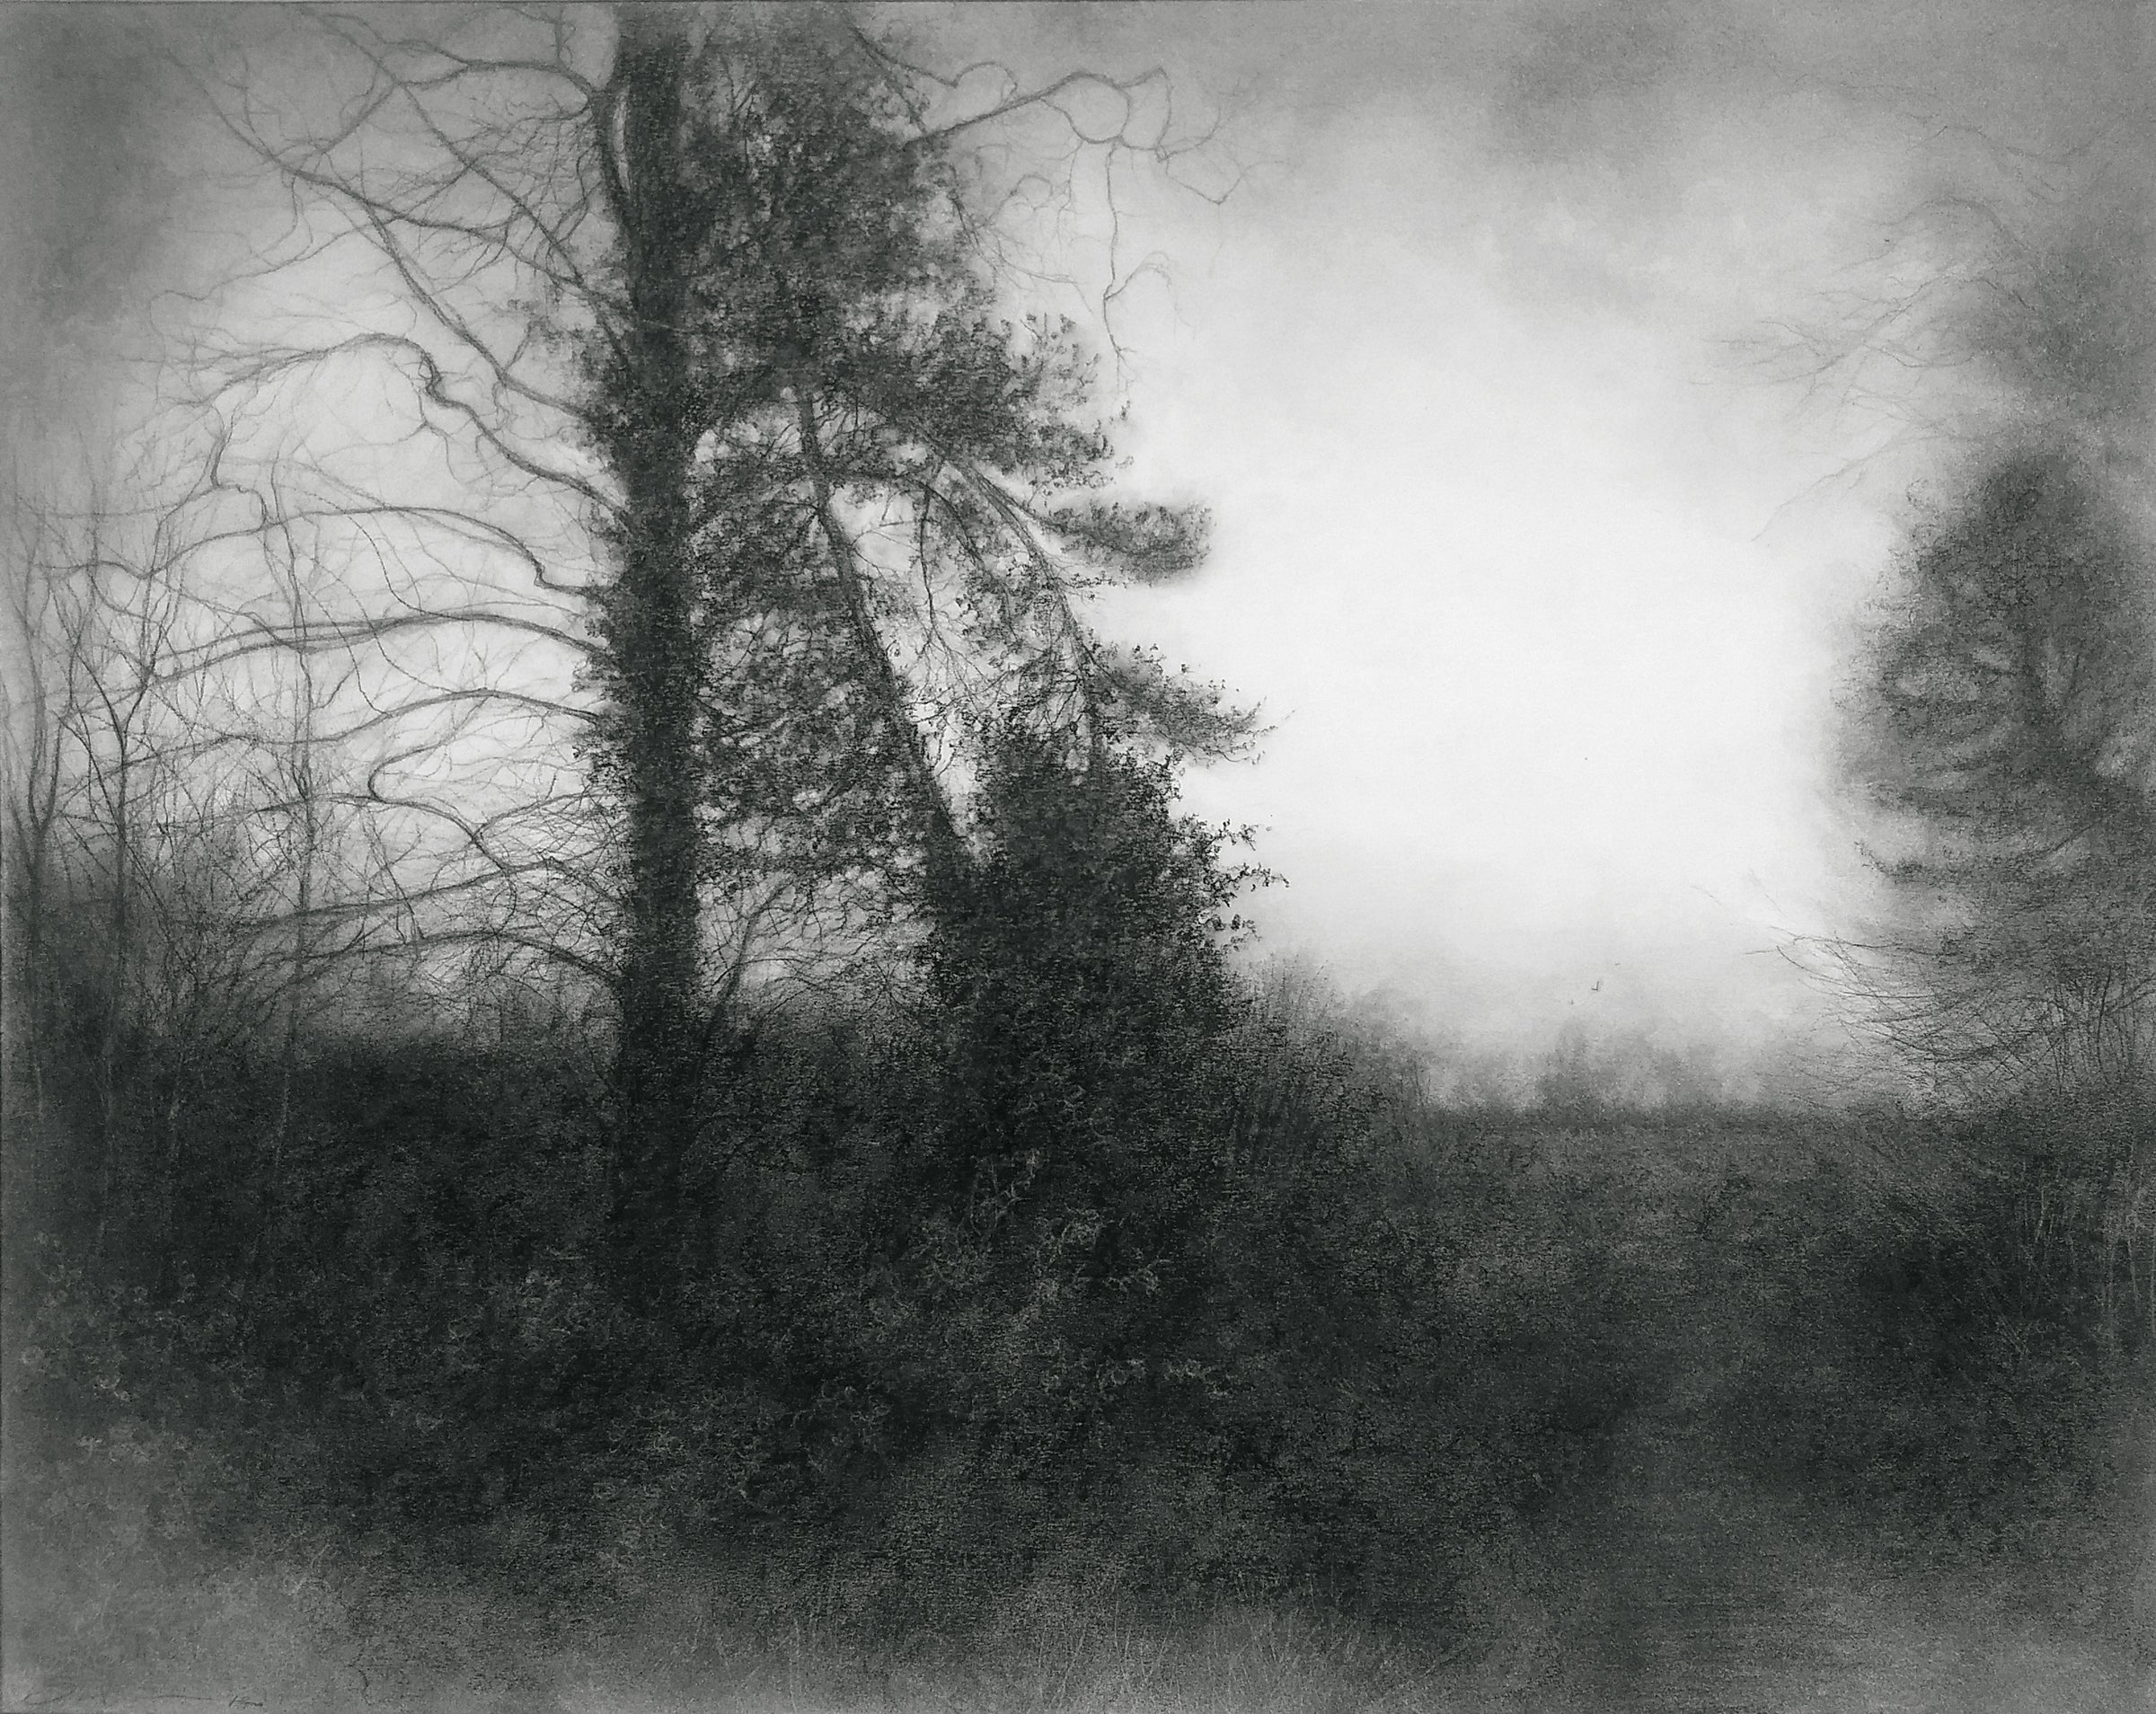 A way through black white charcoal drawing of misty landscape w spruce tree